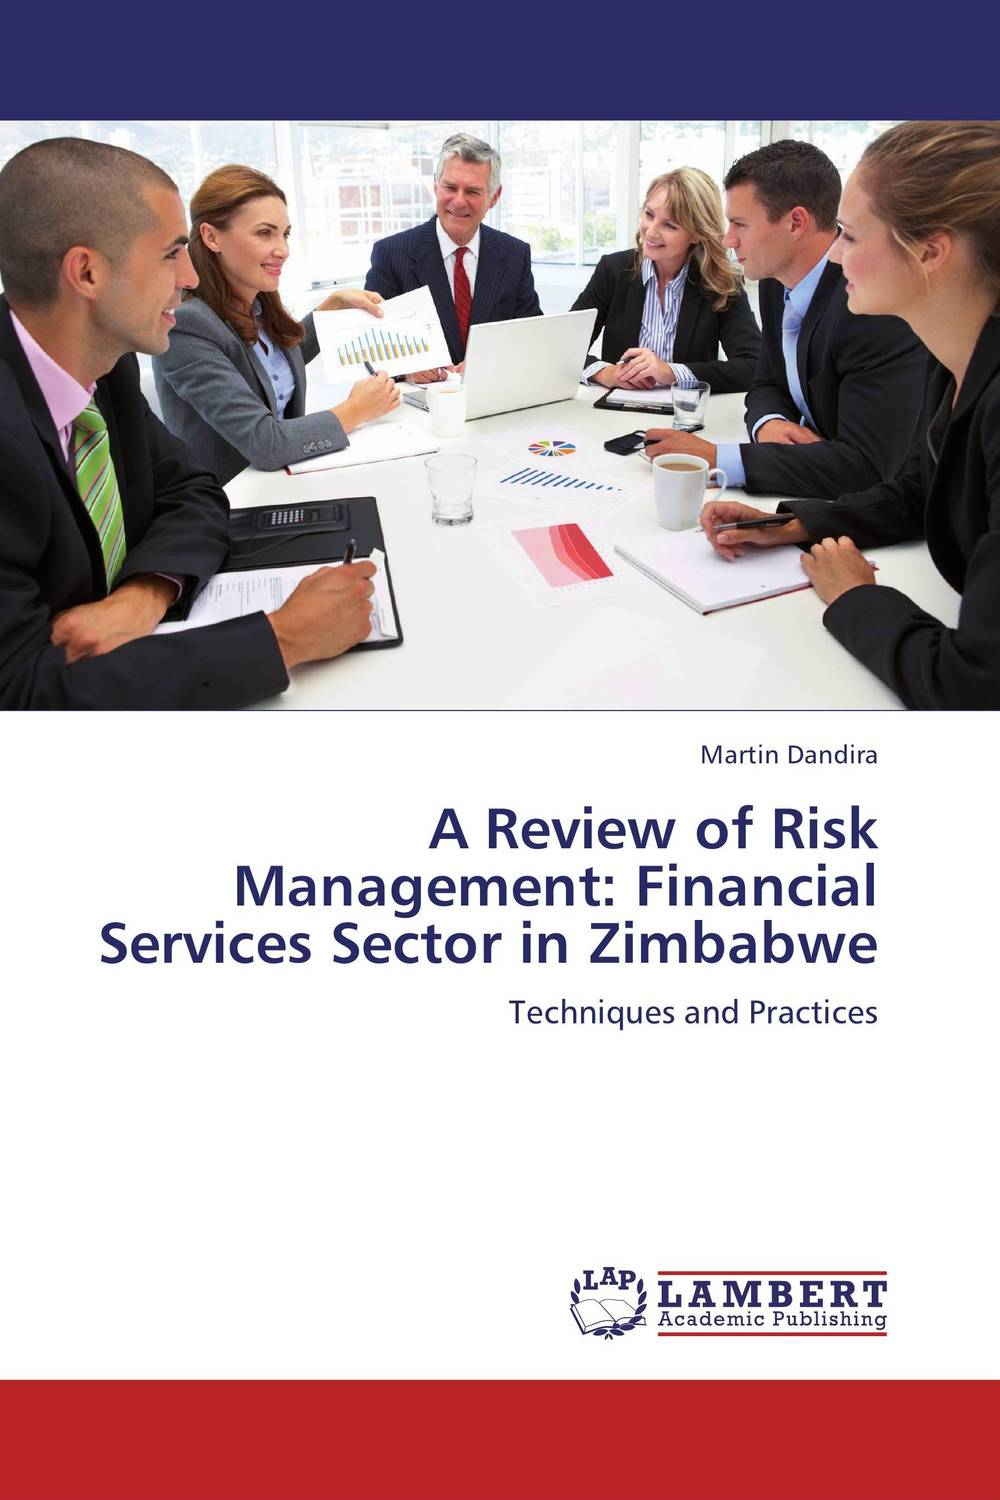 A Review of Risk Management: Financial Services Sector in Zimbabwe bob litterman quantitative risk management a practical guide to financial risk